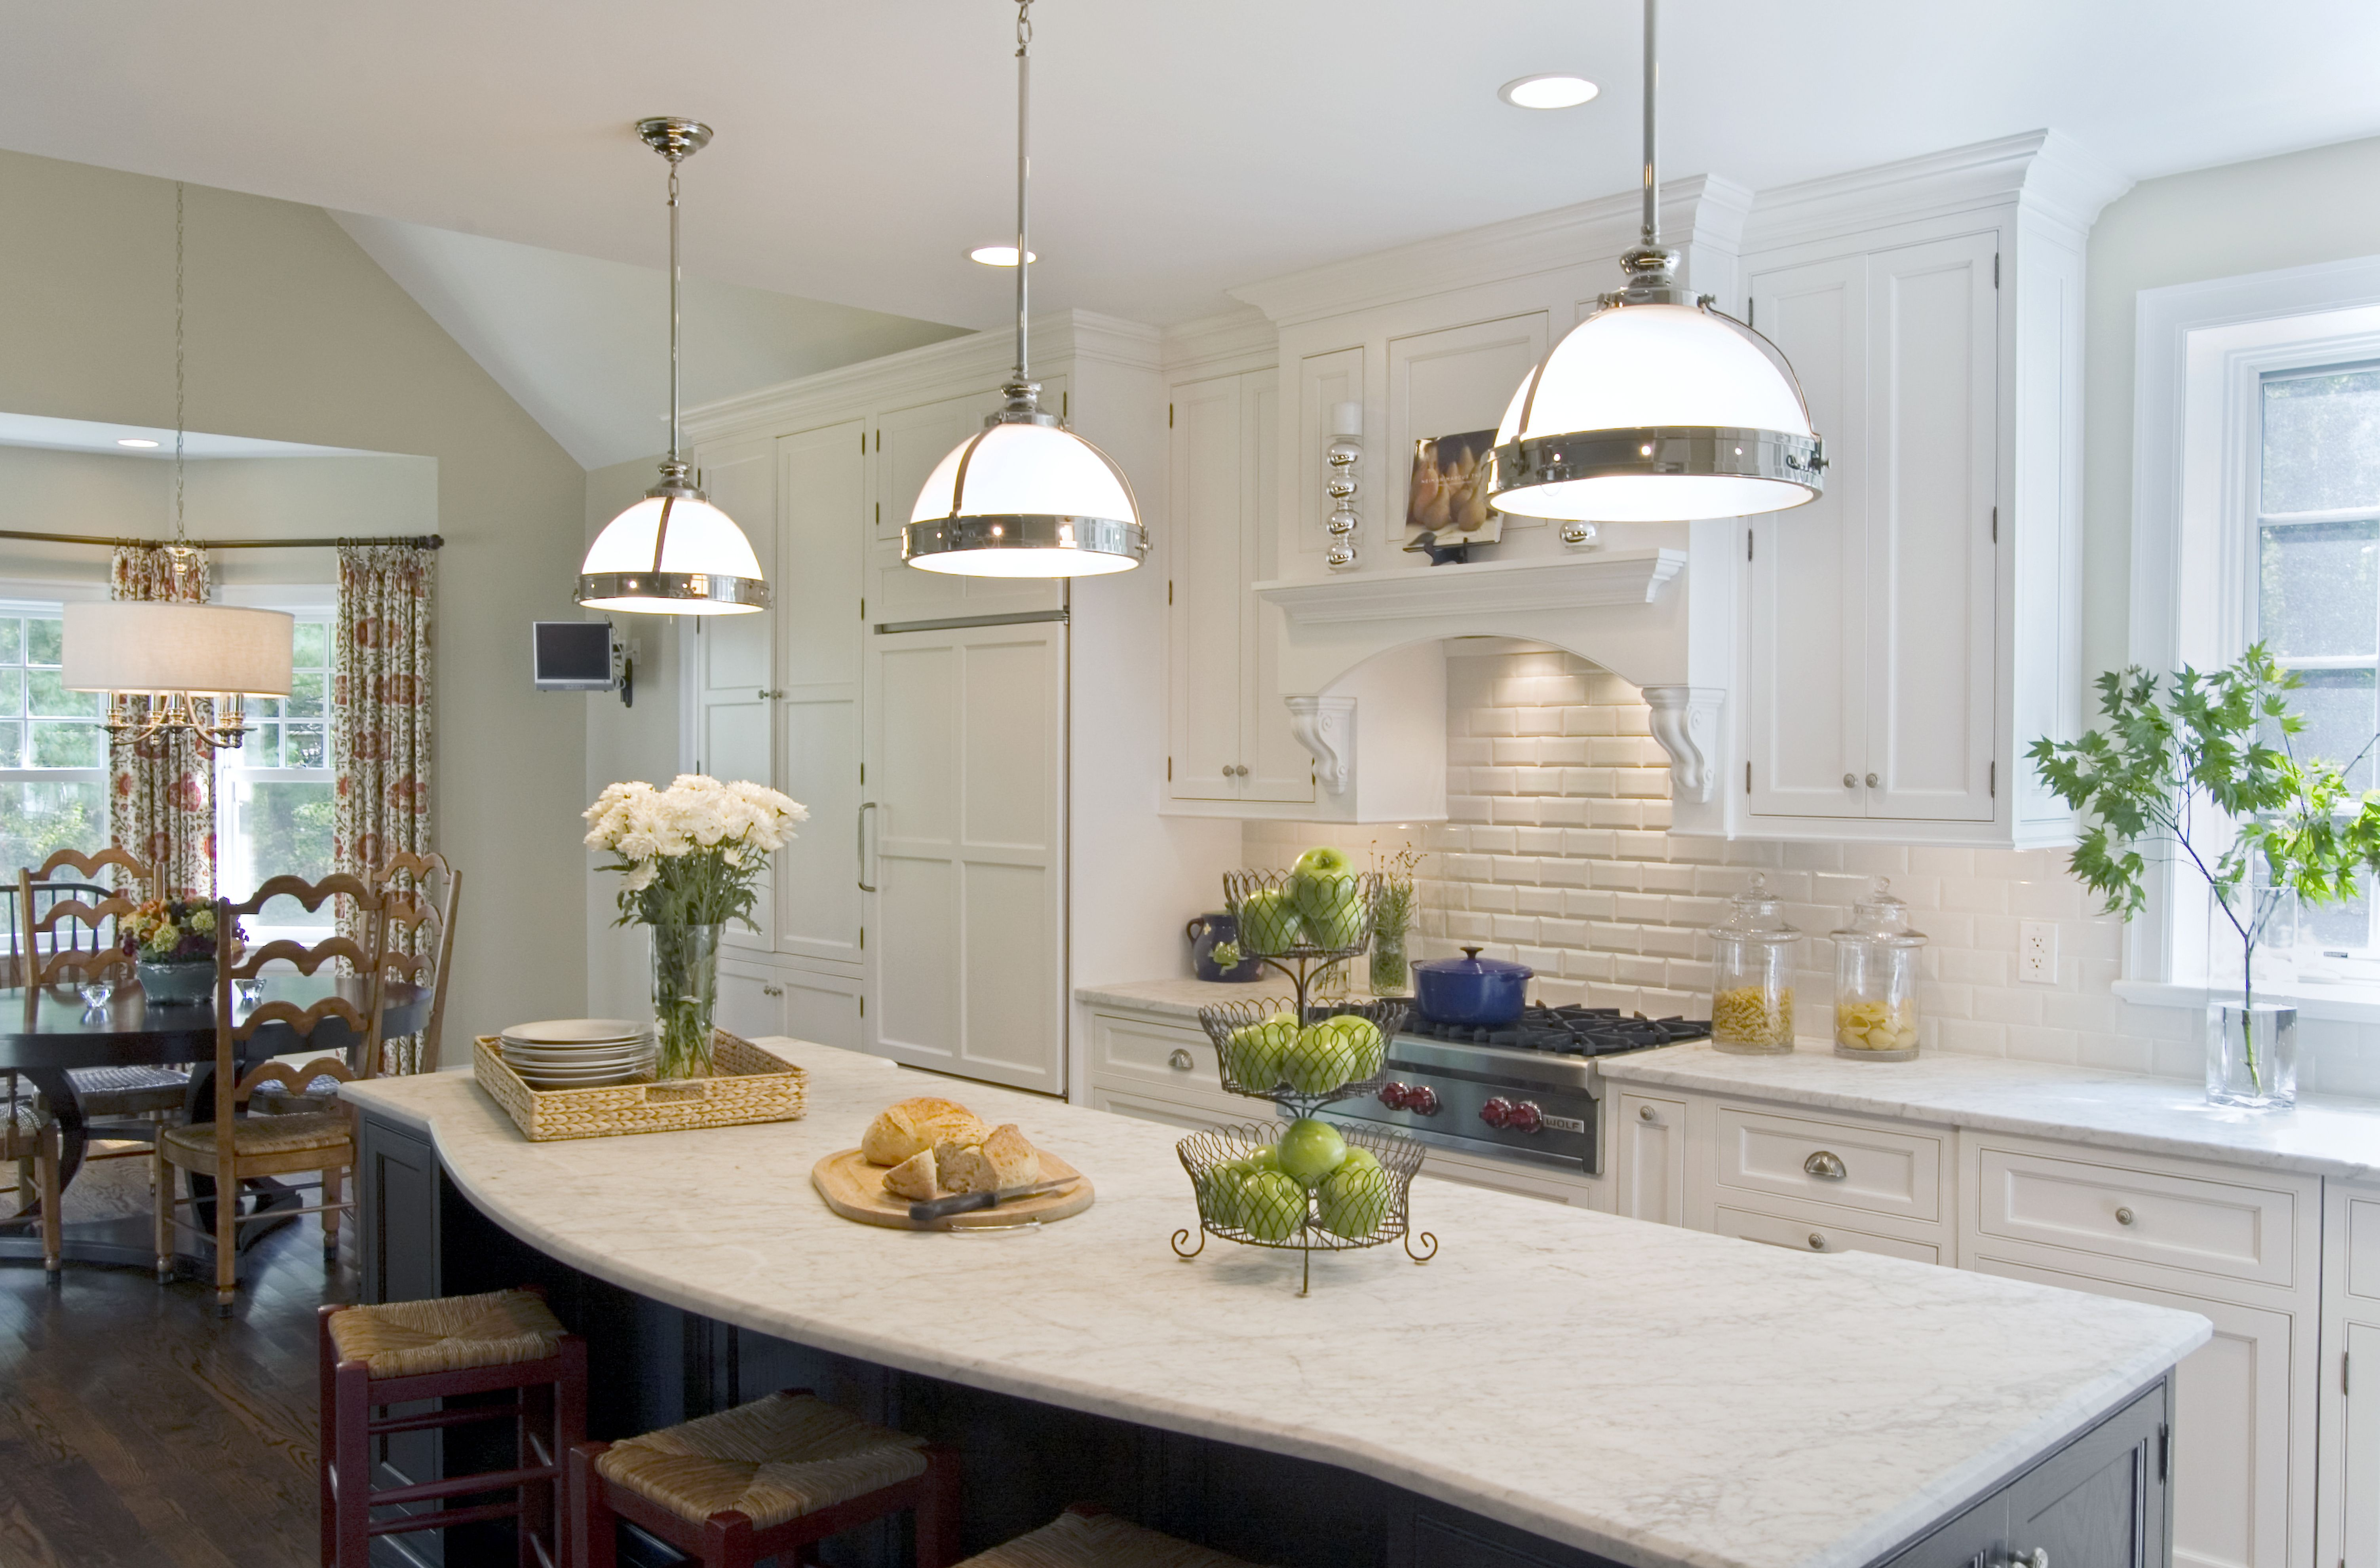 Elegant Find This Pin And More On Adelphi Kitchens.